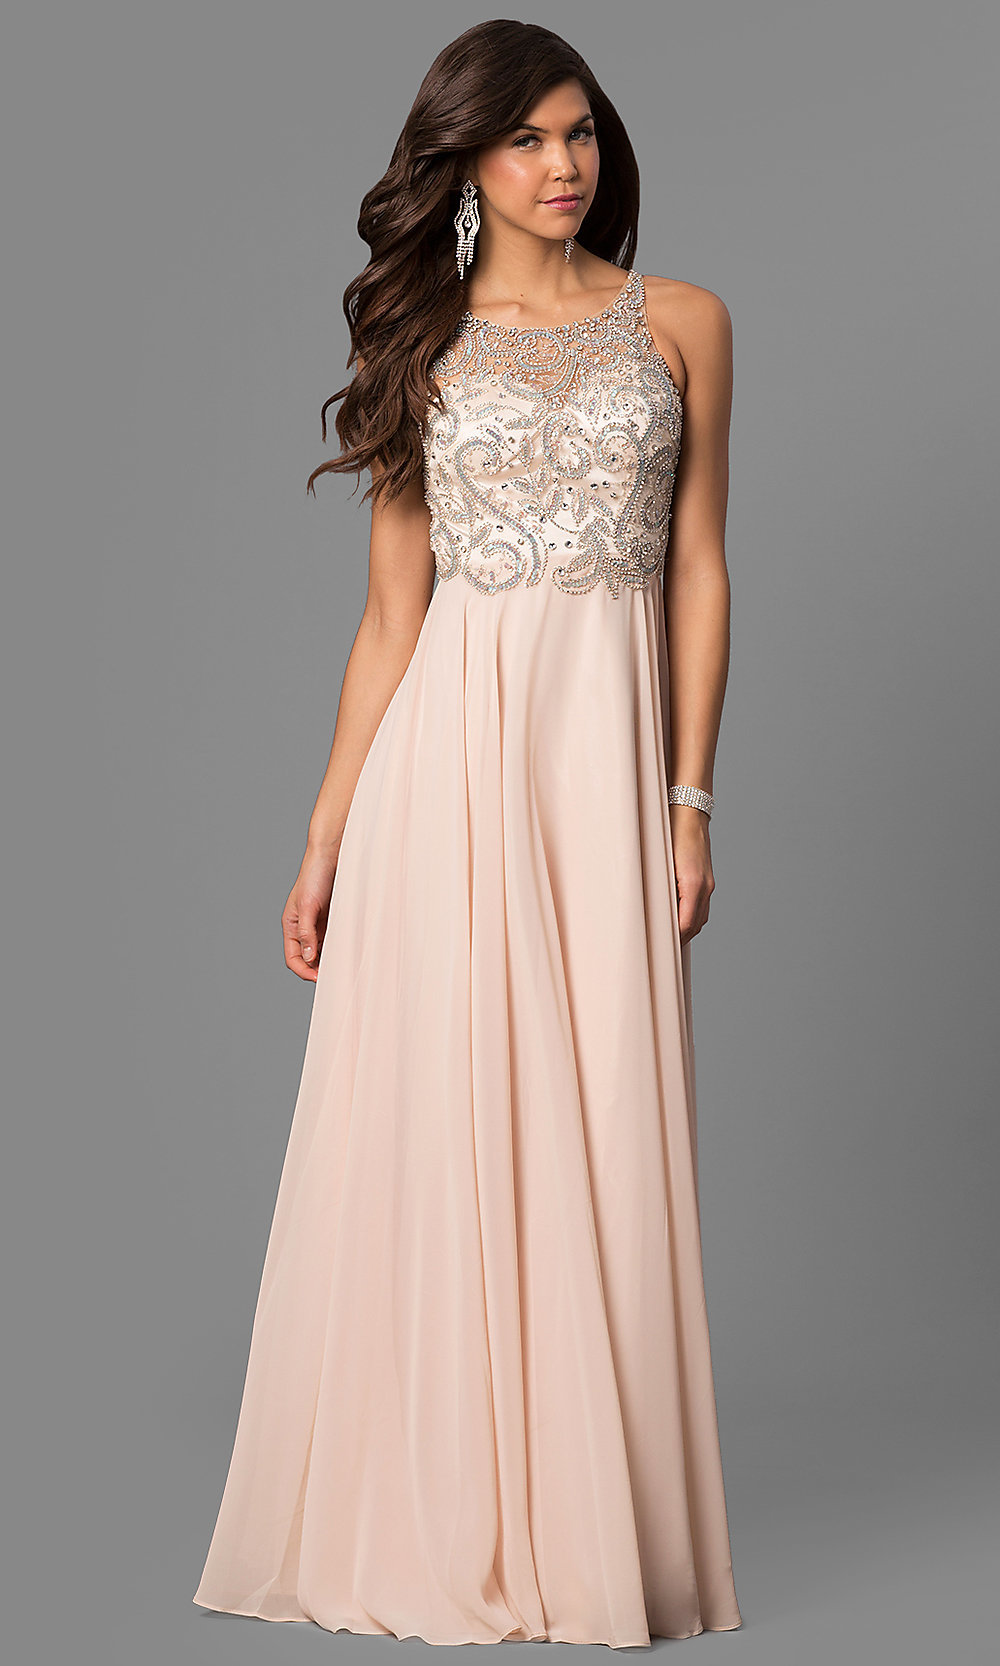 Illusion Lace Appliqued Pearls Embellished Nude Pink Tulle